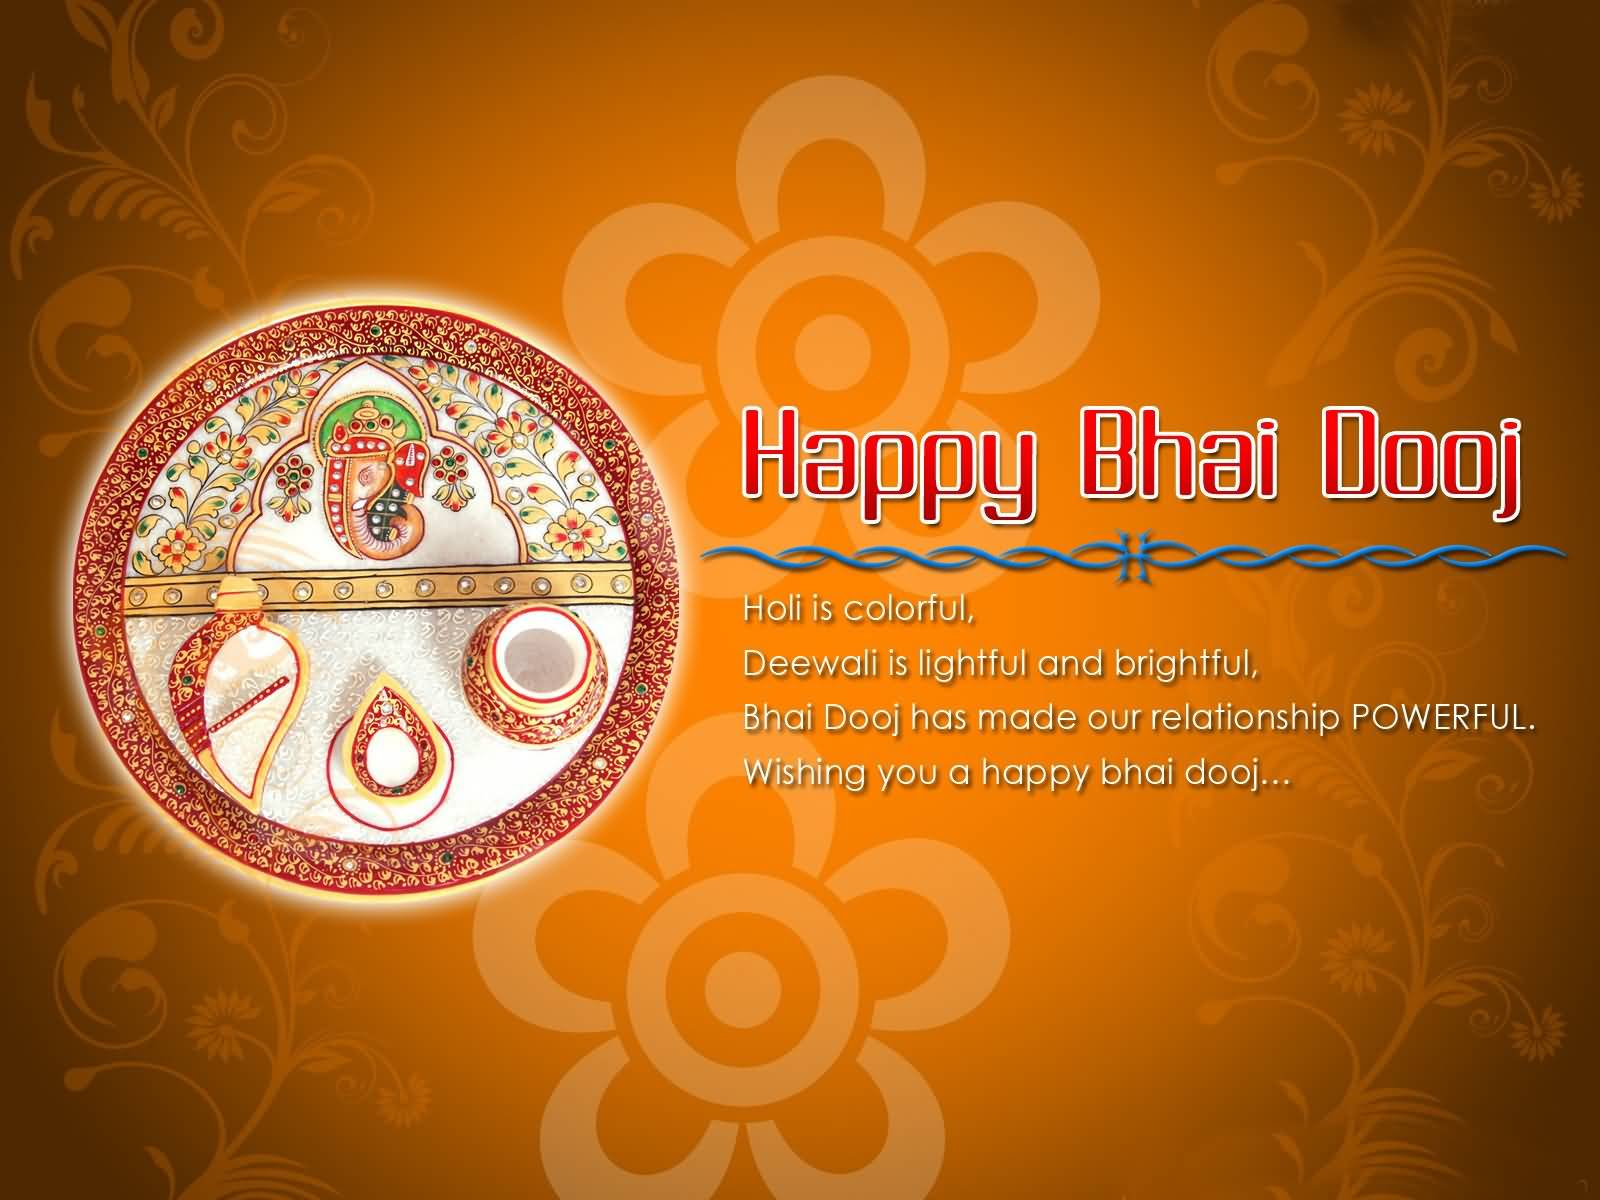 50 most beautiful bhai dooj wish pictures and images wishing you a happy bhai dooj greeting card kristyandbryce Images